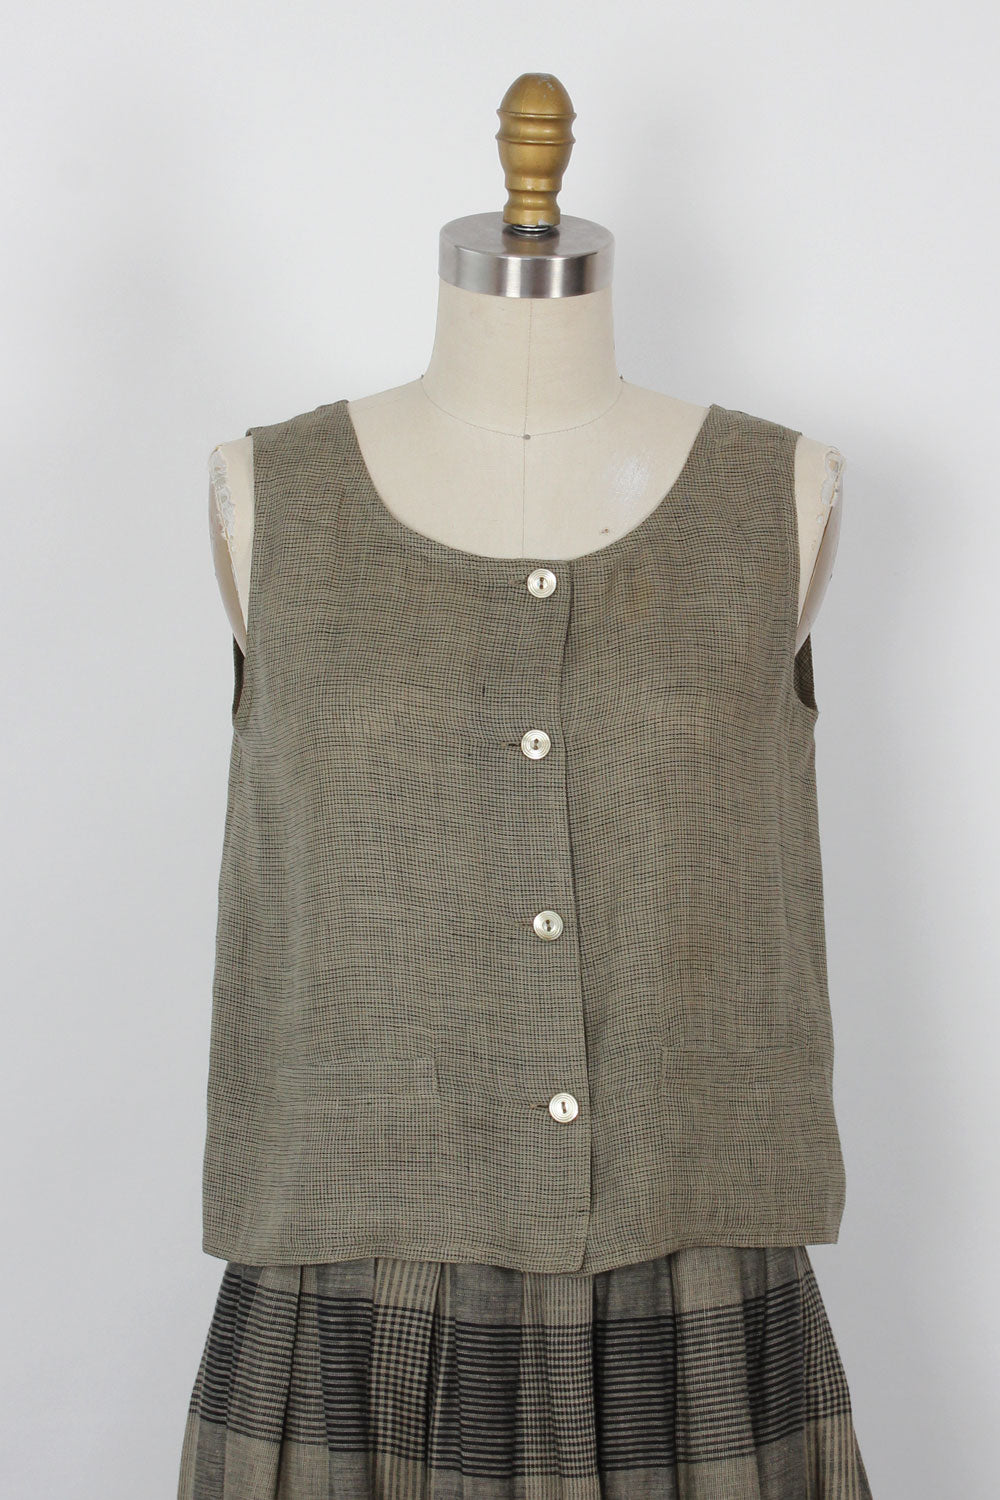 Max Mara Linen 3pc Ensemble XS/S